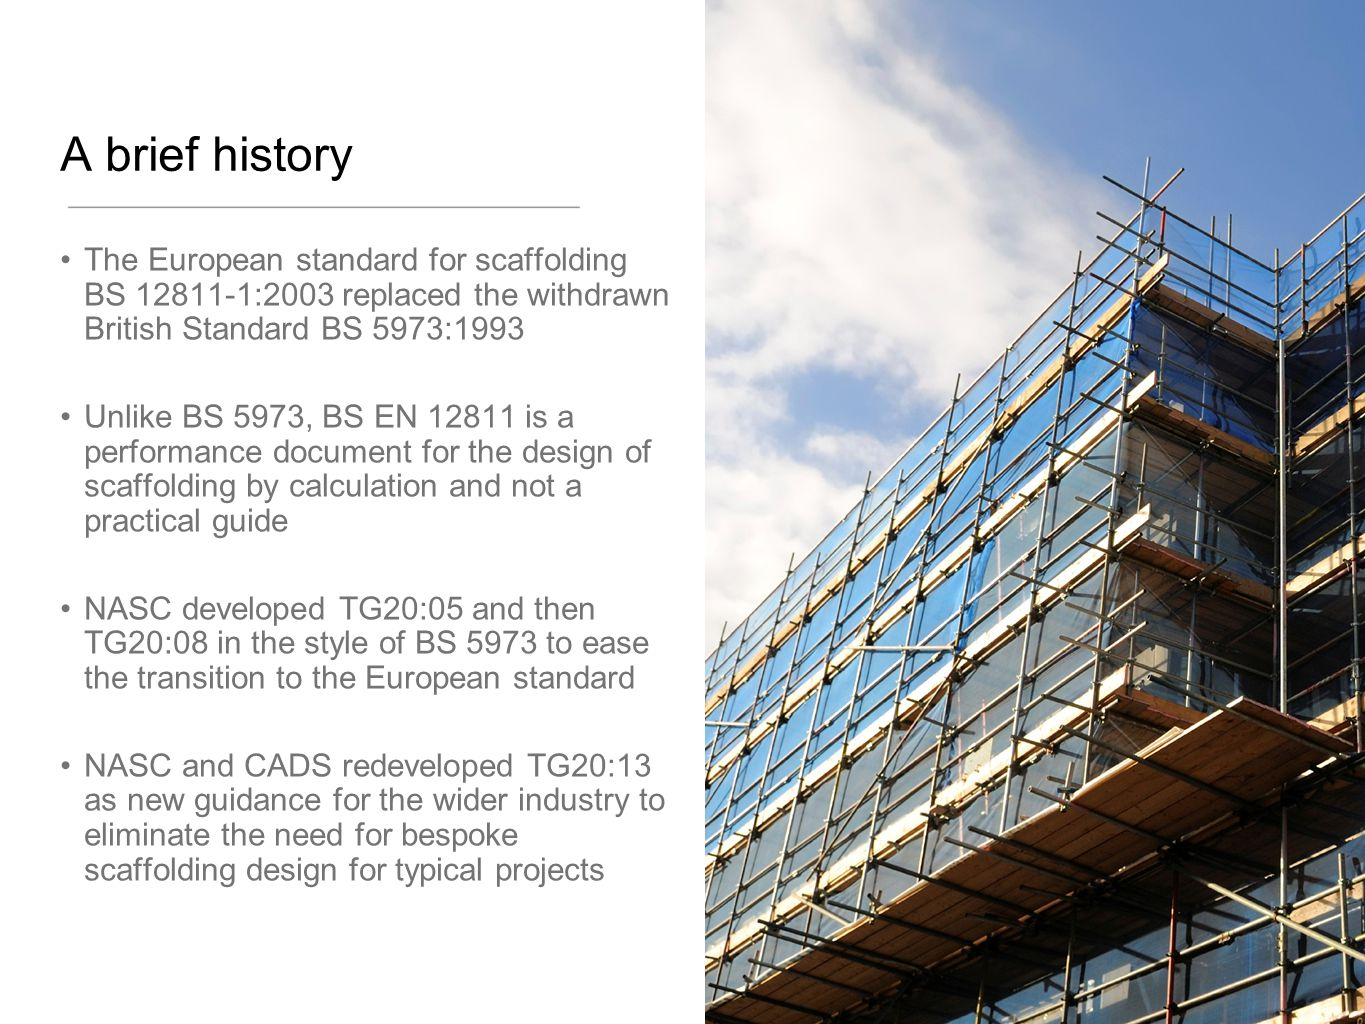 A brief history The European standard for scaffolding BS :2003 replaced the withdrawn British Standard BS 5973:1993.